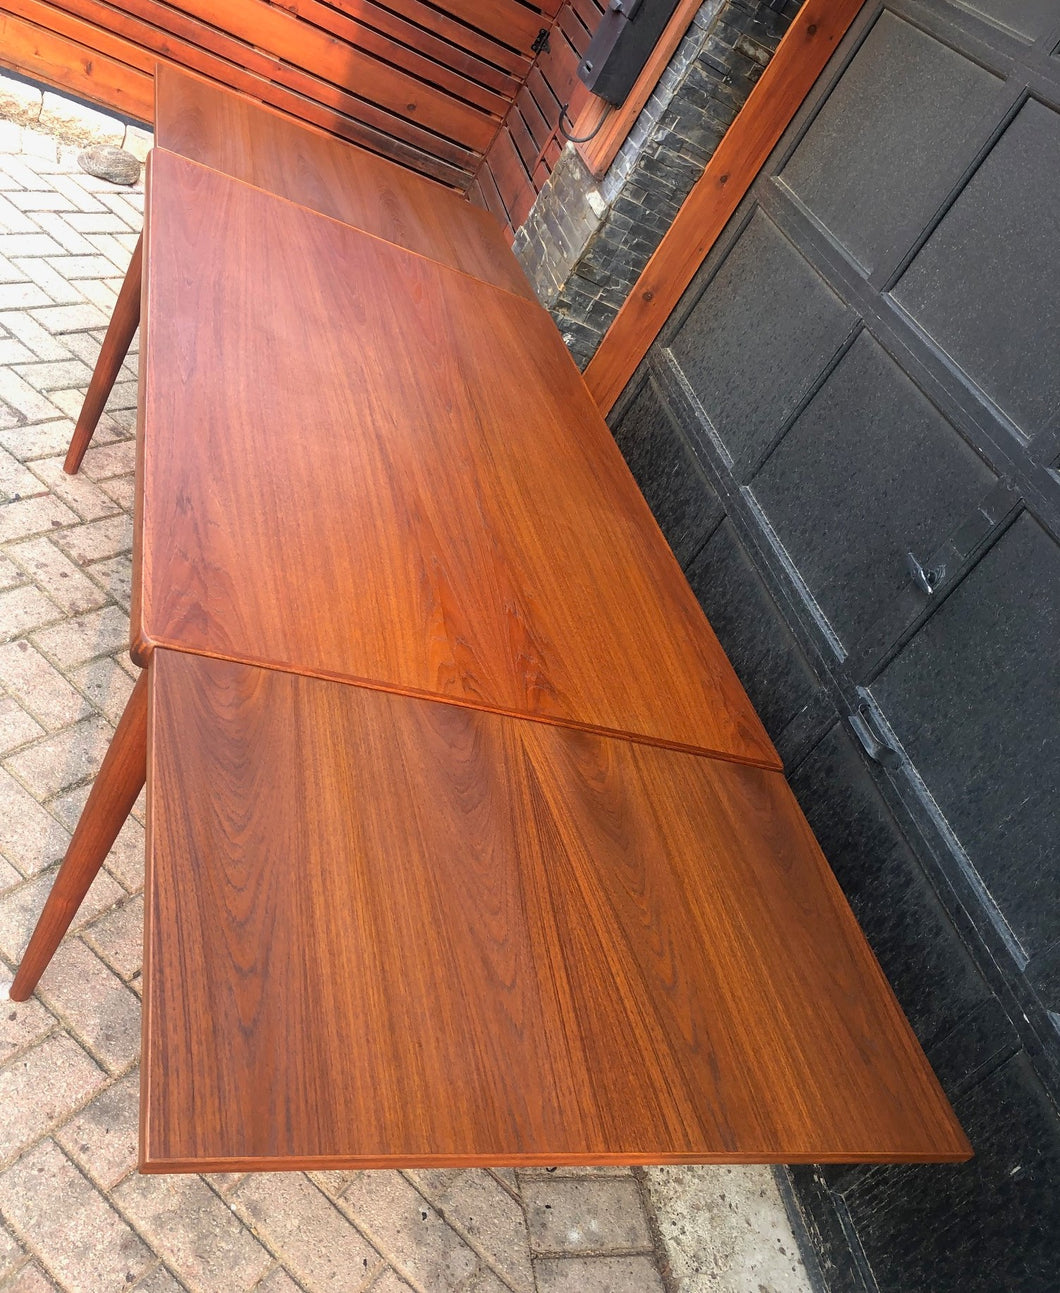 REFINISHED Danish MCM Teak Draw Leaf Table by H. Kjaernulf 55